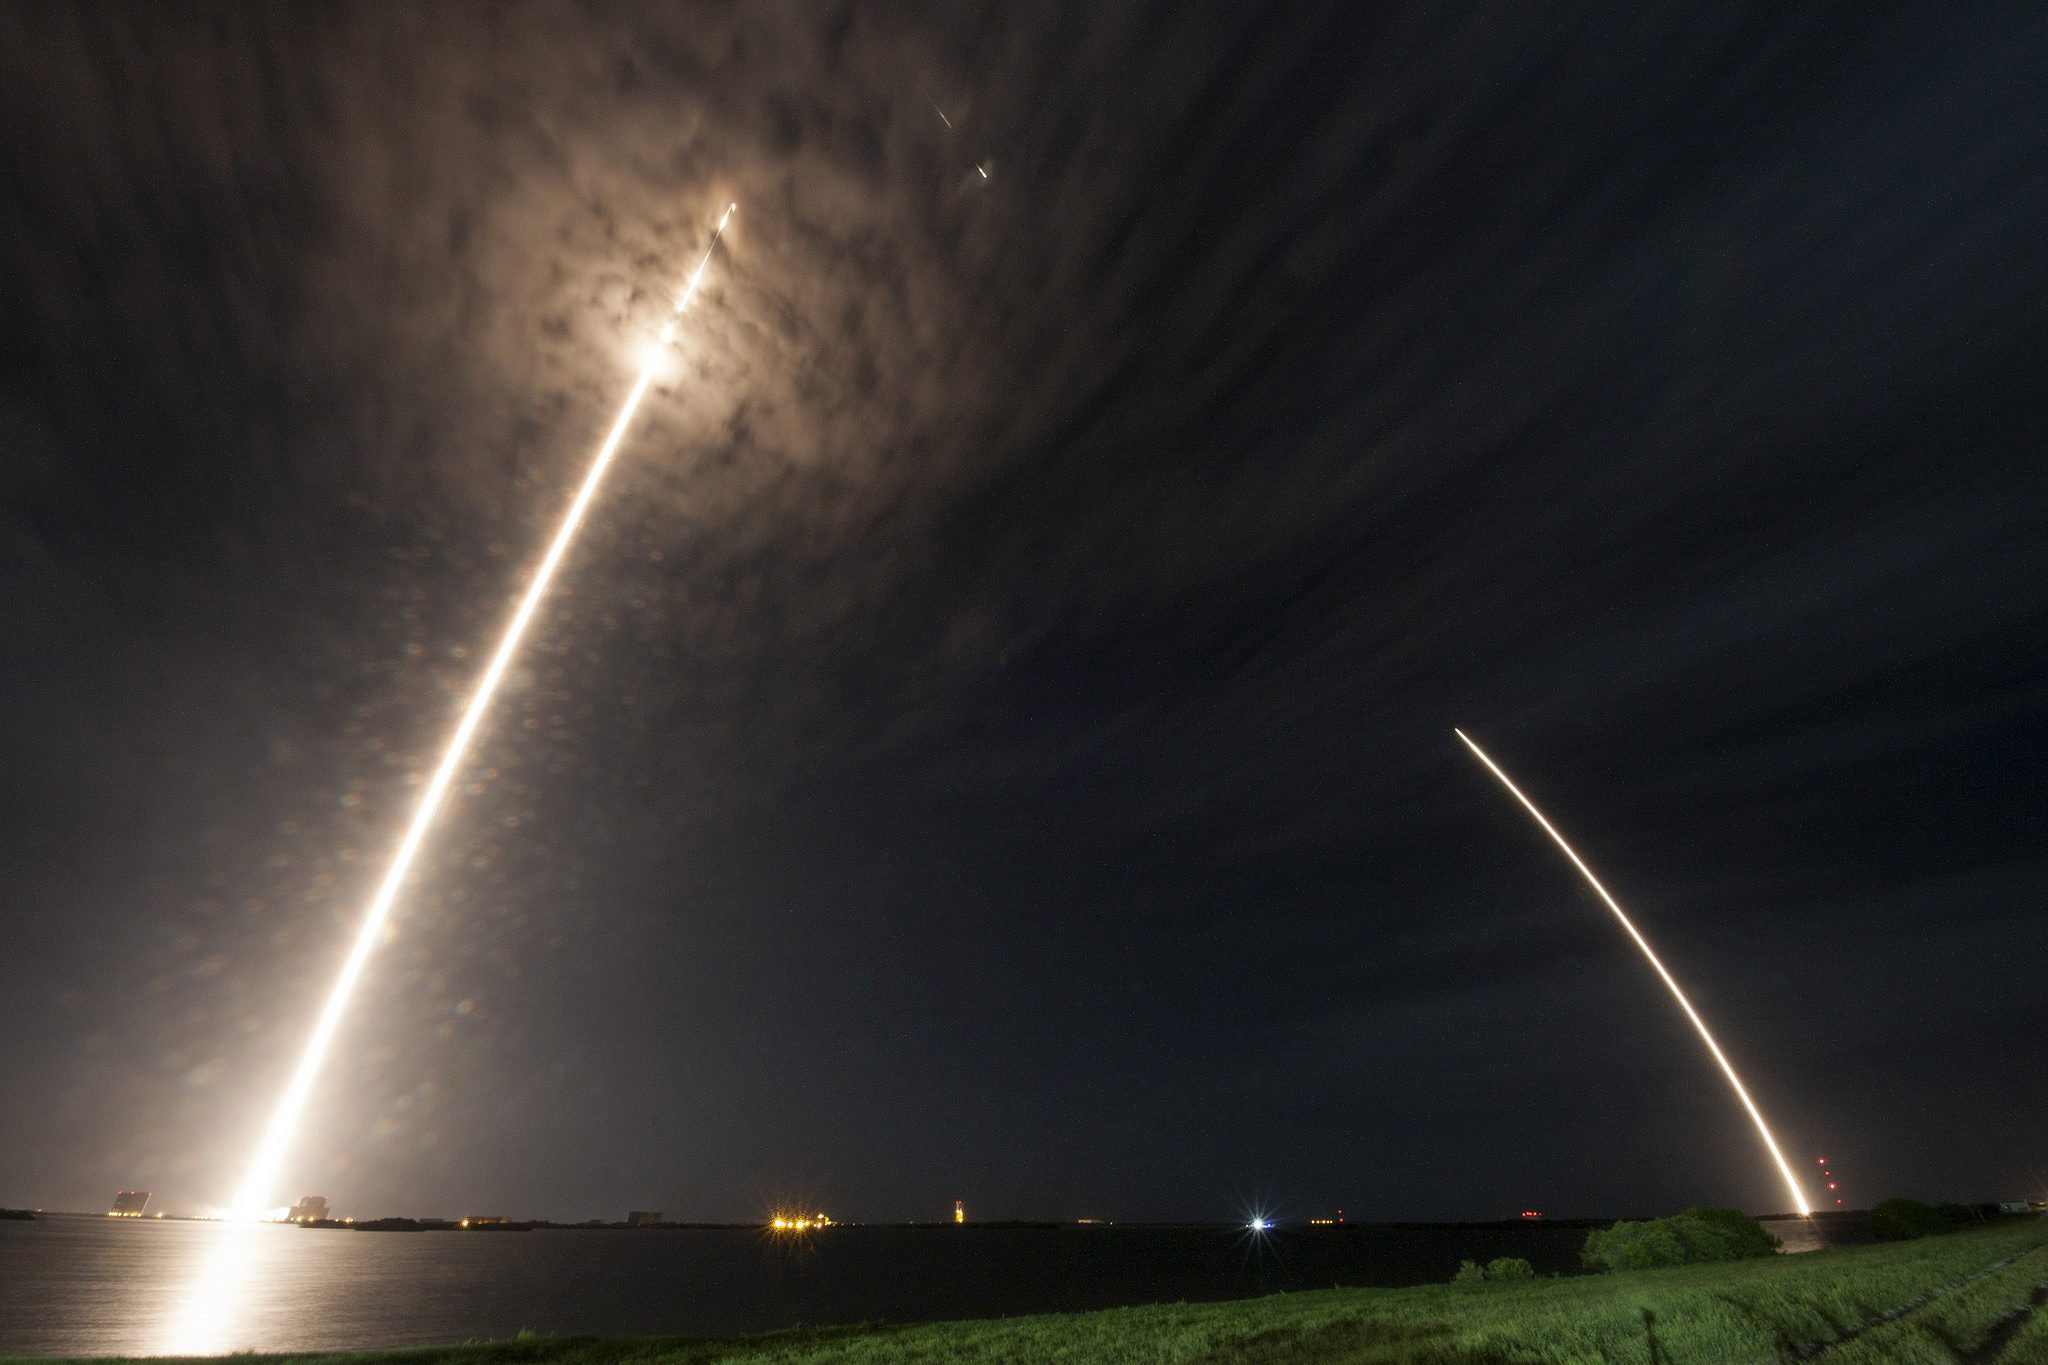 The liftoff of the SpaceX Falcon 9 rocket and Dragon spacecraft from NASA's Kennedy Space Center in Cape Canaveral, Fla., July 18 2016.